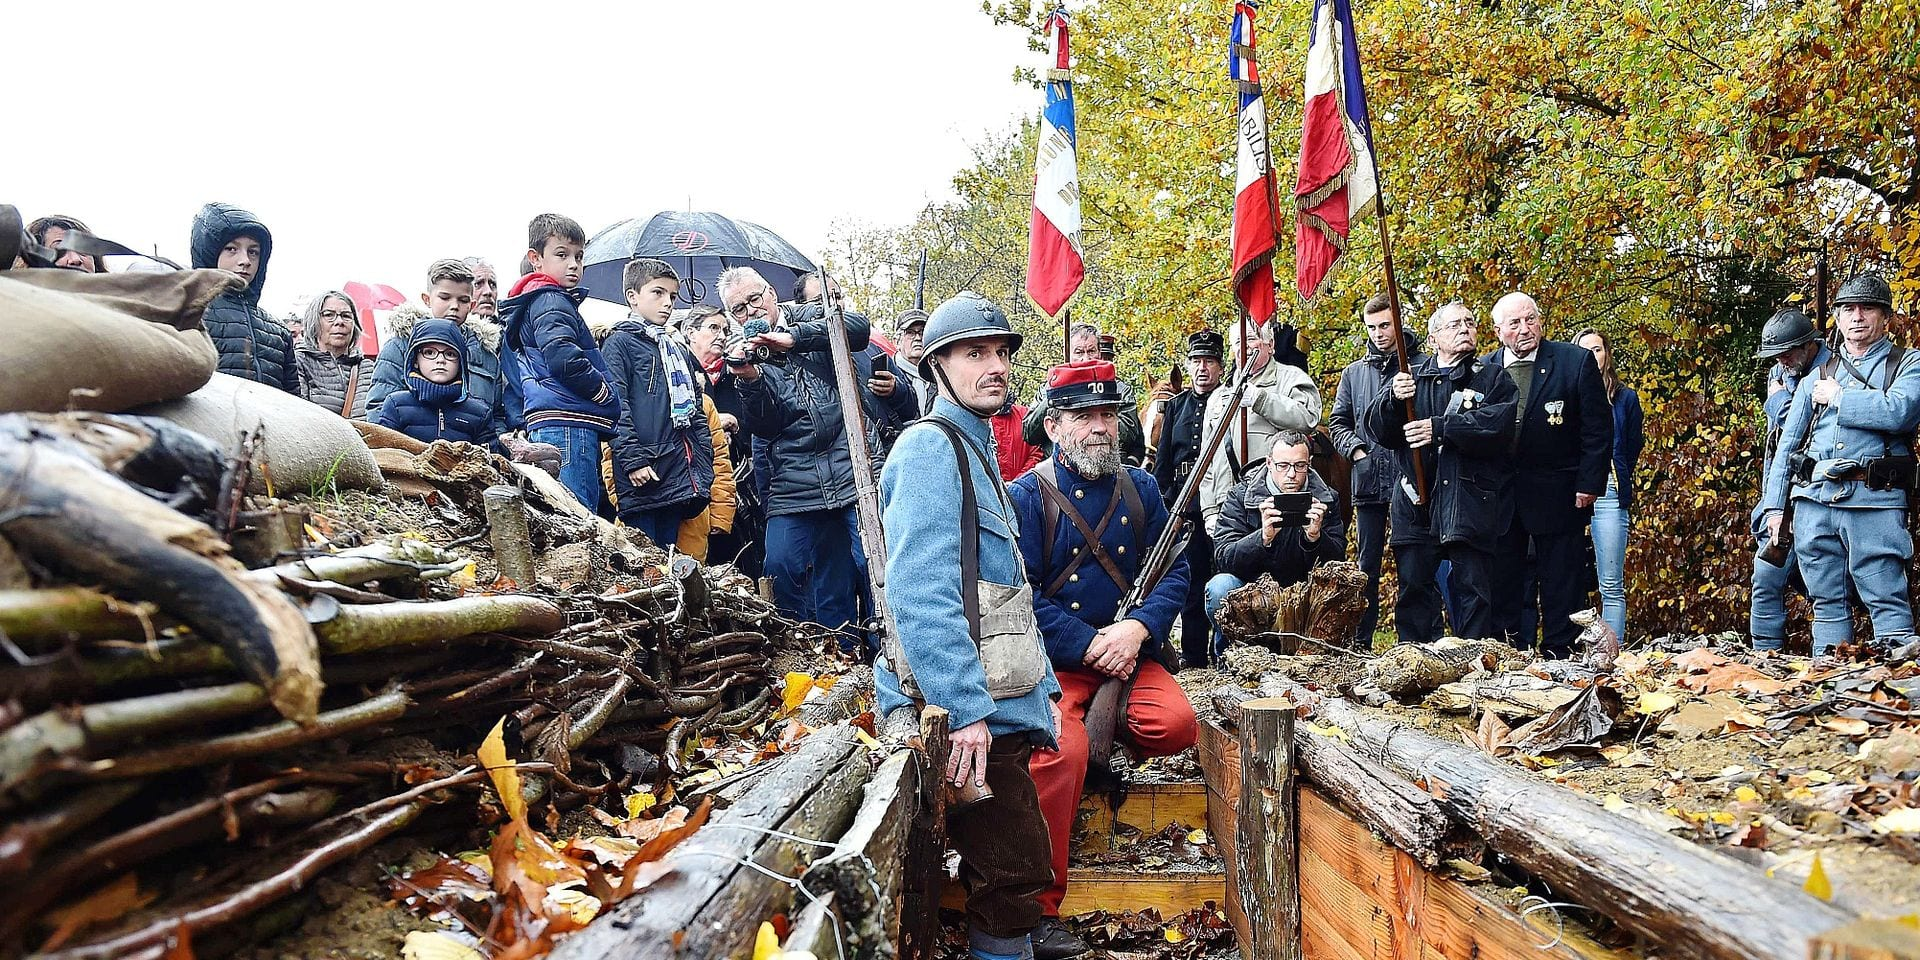 Inhabitants of Souille and La Guierche and history enthusiast, dressed with vintage army uniforms of Poilu (French soldier in World War I), stand guard in a reconstructed trench of the WWI, as they take part in a ceremony to inaugurate the trench on November 11, 2018, as part of the commemorations marking the 100th anniversary of the 11 November 1918 armistice, ending World War I, in La Guierche, northwestern France. - The trench, dug next to the village hall, by young people, as part of citizens' days, is intended to be preserved and to serve as a memorial site. (Photo by JEAN-FRANCOIS MONIER / AFP)